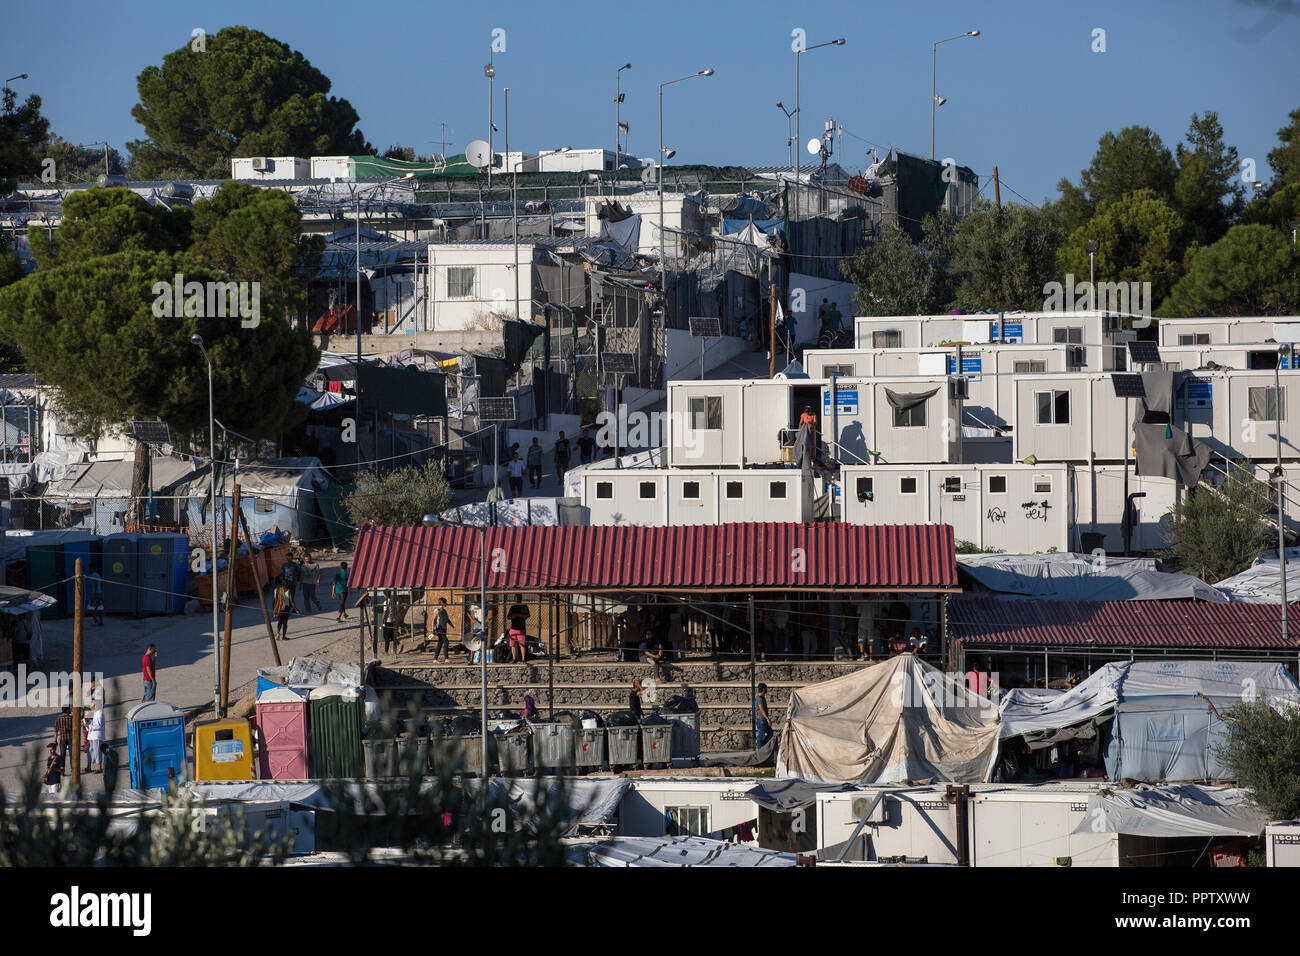 Moira, Greece. 24th Sep, 2018. View of a part of the refugee camp Moria. Credit: Socrates Baltagiannis/dpa/Alamy Live News - Stock Image